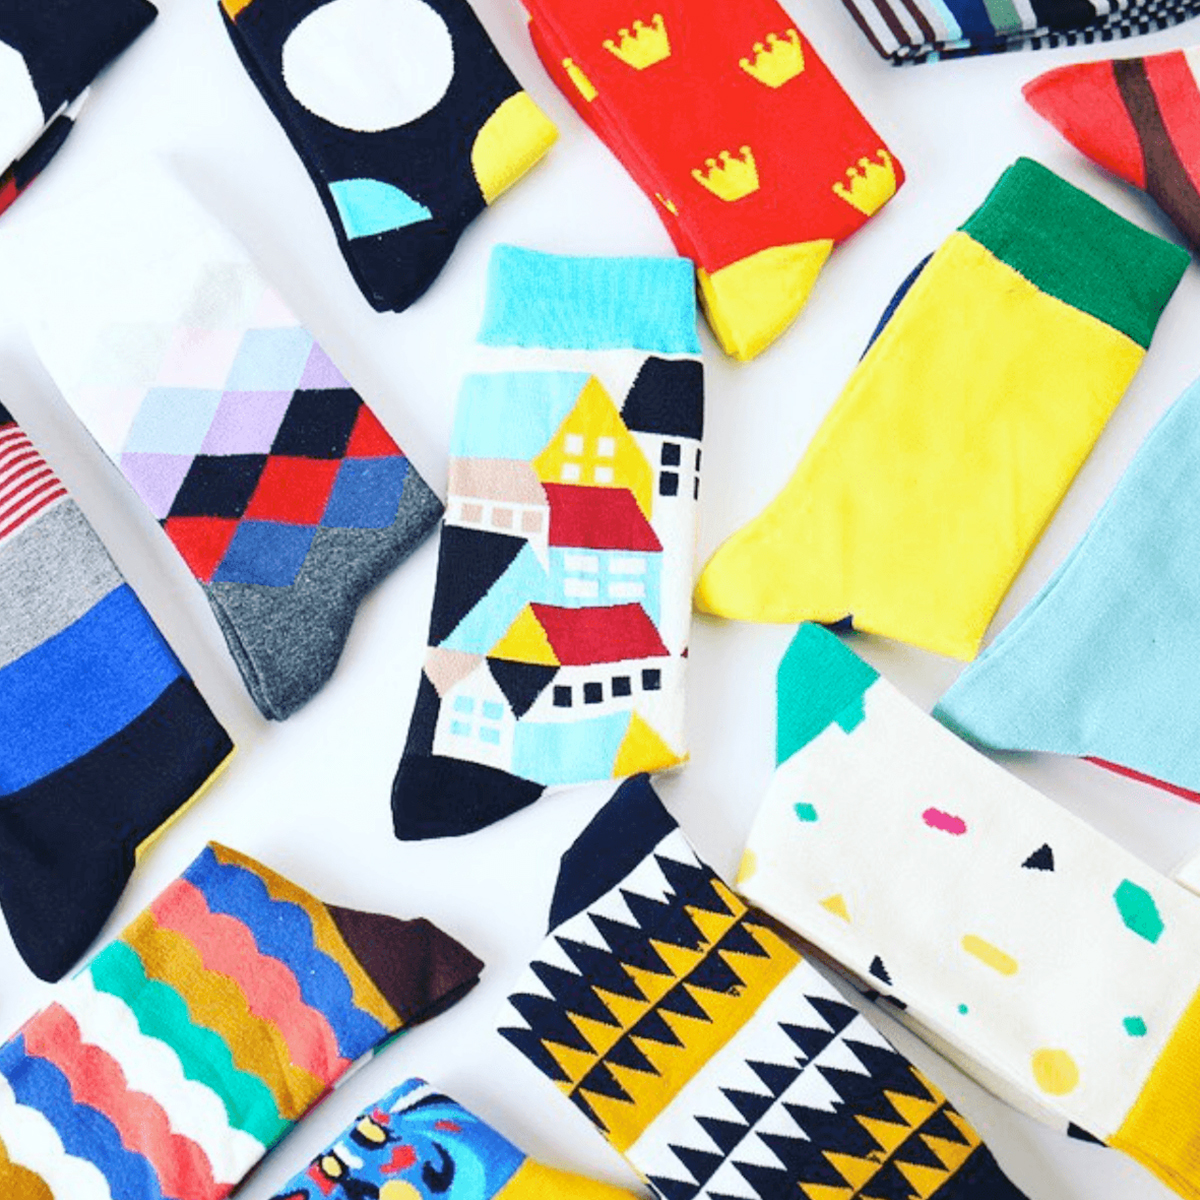 + Cozy socks - Everyone's feet get chilly and it is a fact that, as you age, your ability to handle cold decreases. Give your grandparent the gift of warmth with a pair of snuggly, funky socks. You can try a subscription like Next Socks or check out some of the fun sock options below.(Image | Next Socks)